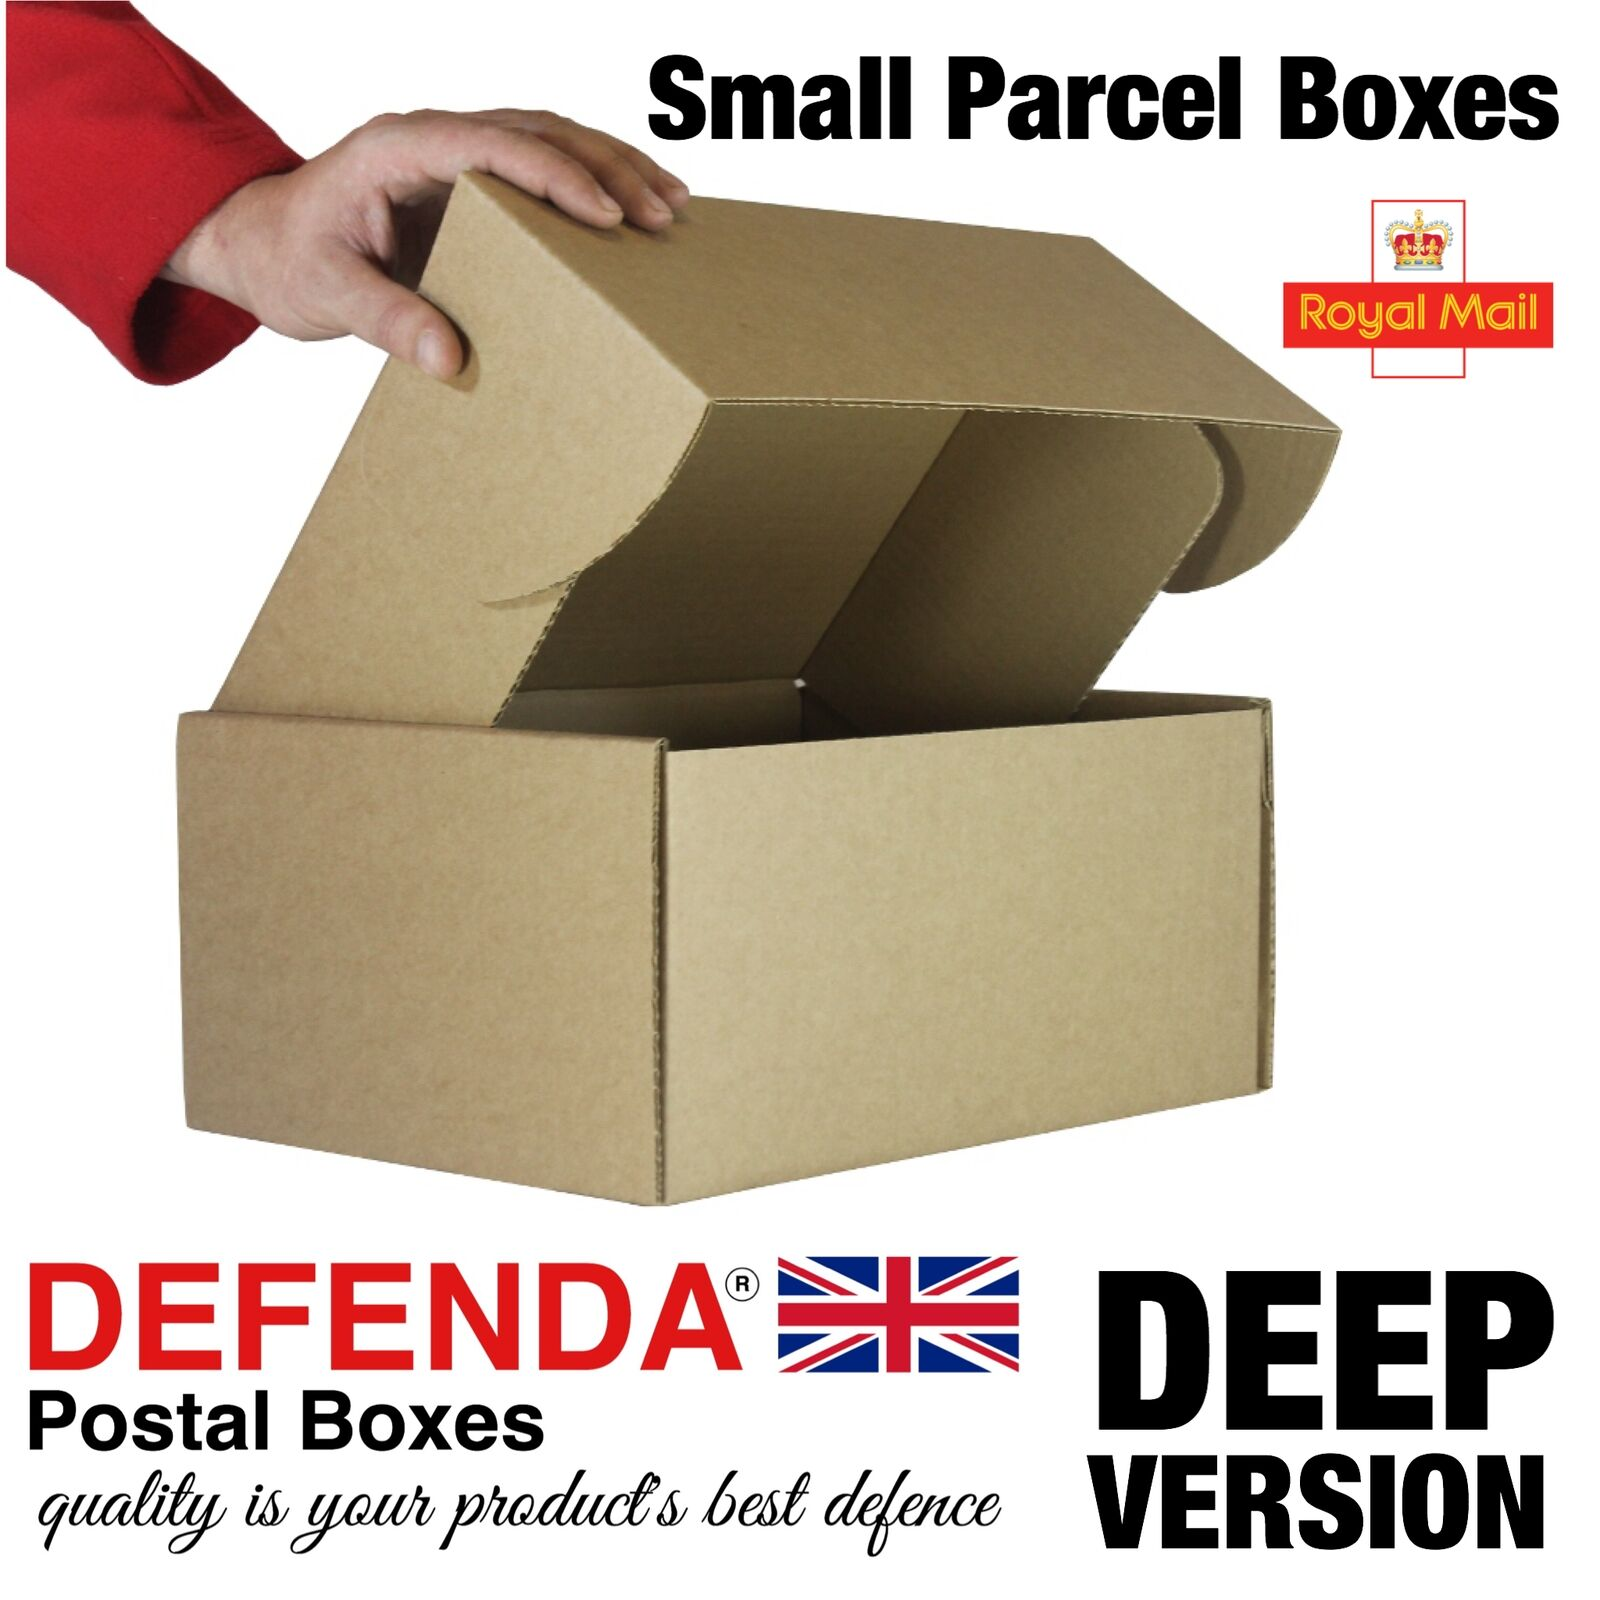 Royal Mail MAXI DEEP SMALL PARCEL BOXES PiP Postal Mailing 322mm 243mm 153mm